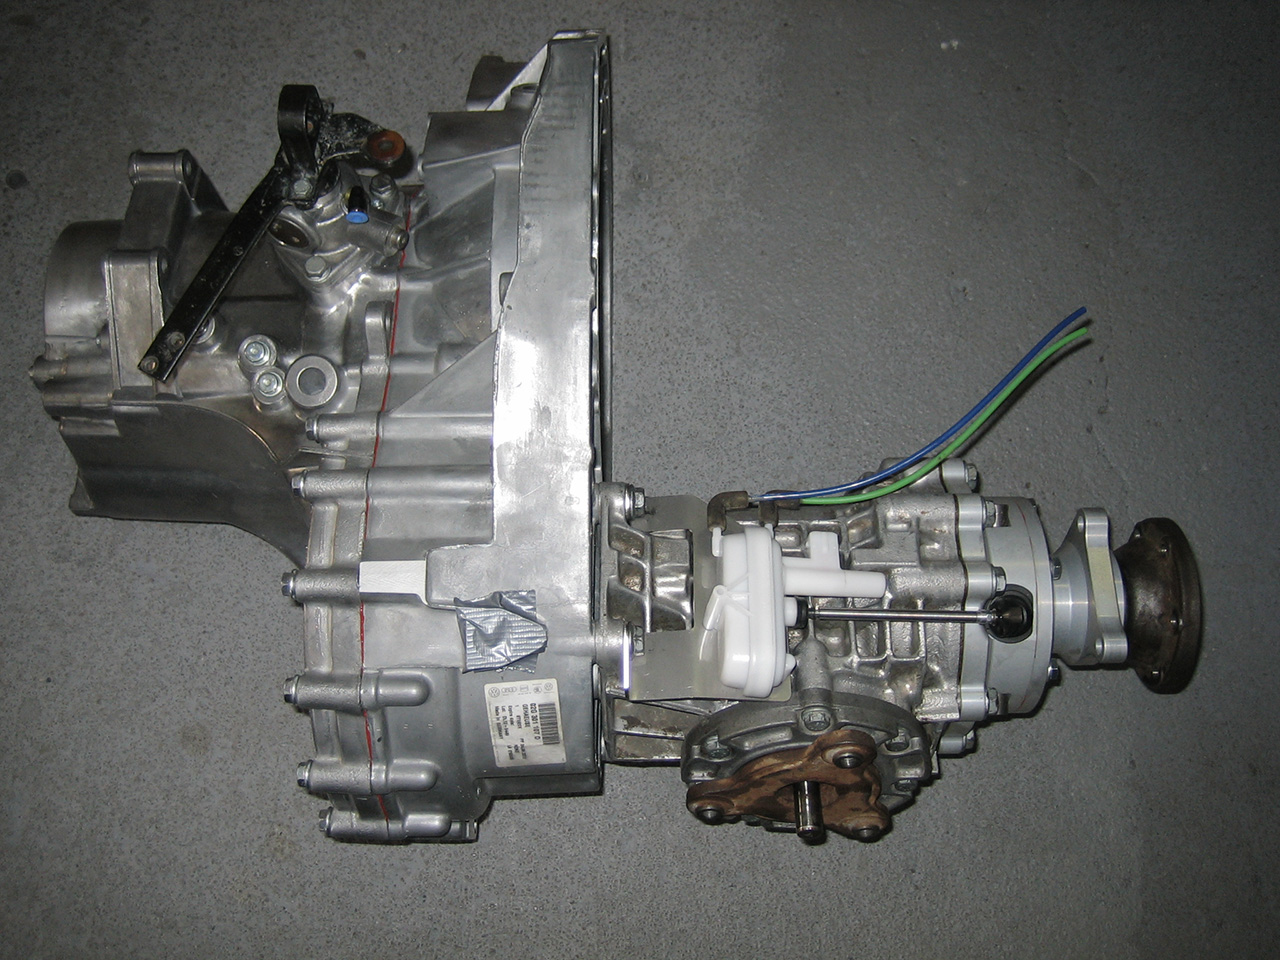 02G gearboxes kit 1 Modifications of 02G gearboxes by Eurotuning